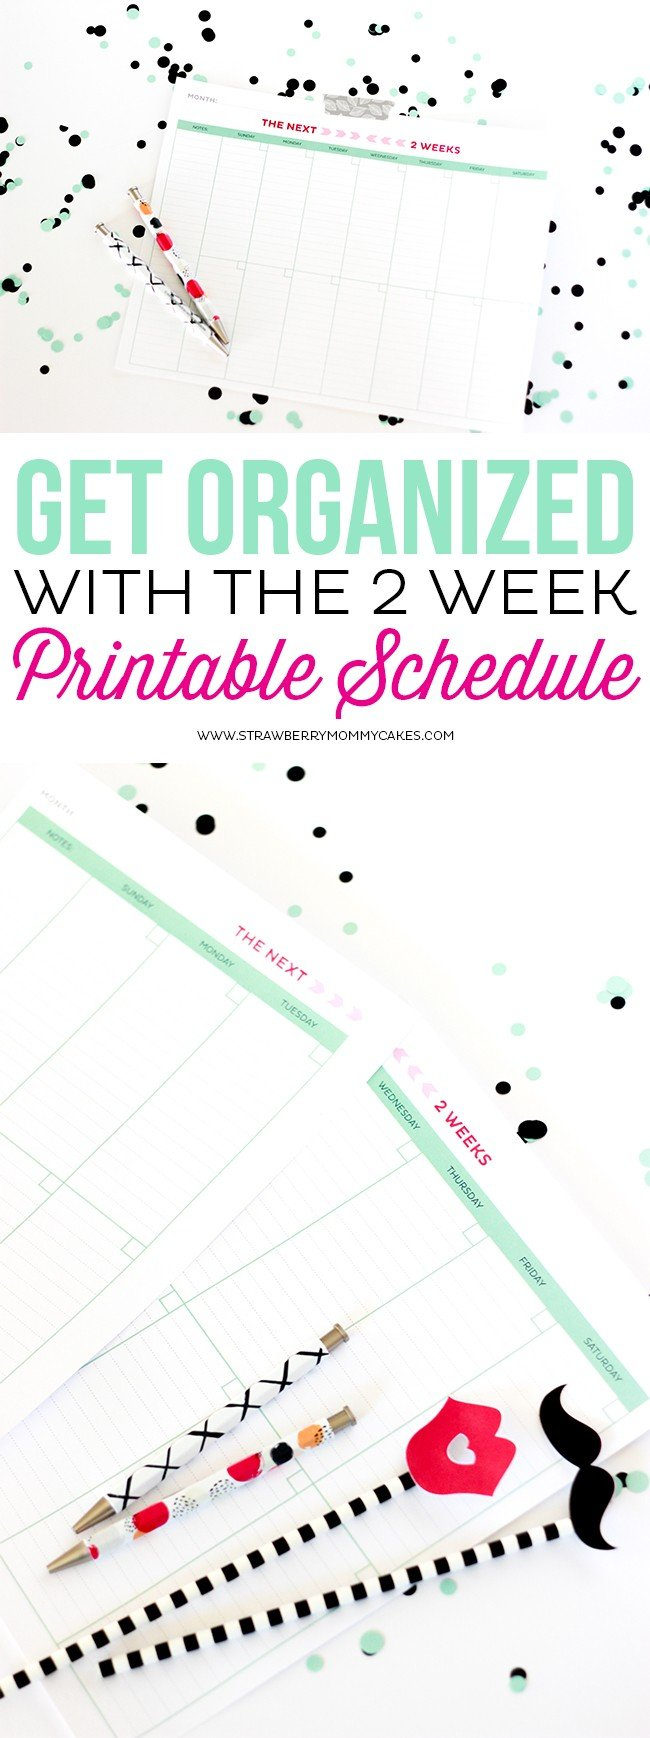 Get Organized With The 2 Week Printable Schedule Next Two Week Calendar Schedule